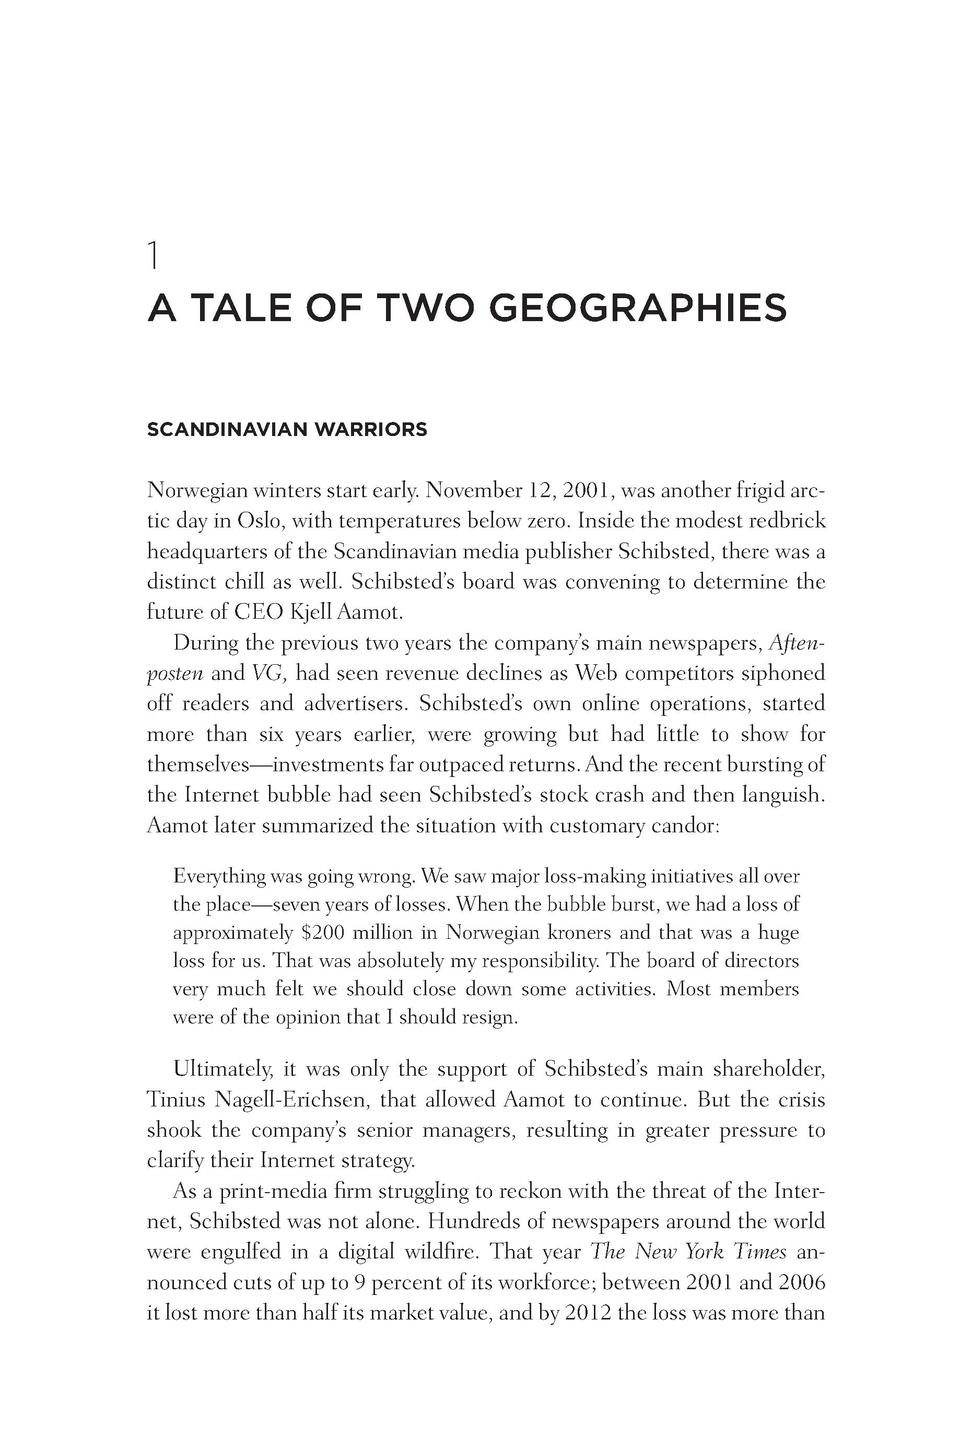 1 A TALE OF TWO GEOGRAPHIES SCANDINAVIAN WARRIORS  Norwegian winters start early. November 12, 2001, was another frigid ar...